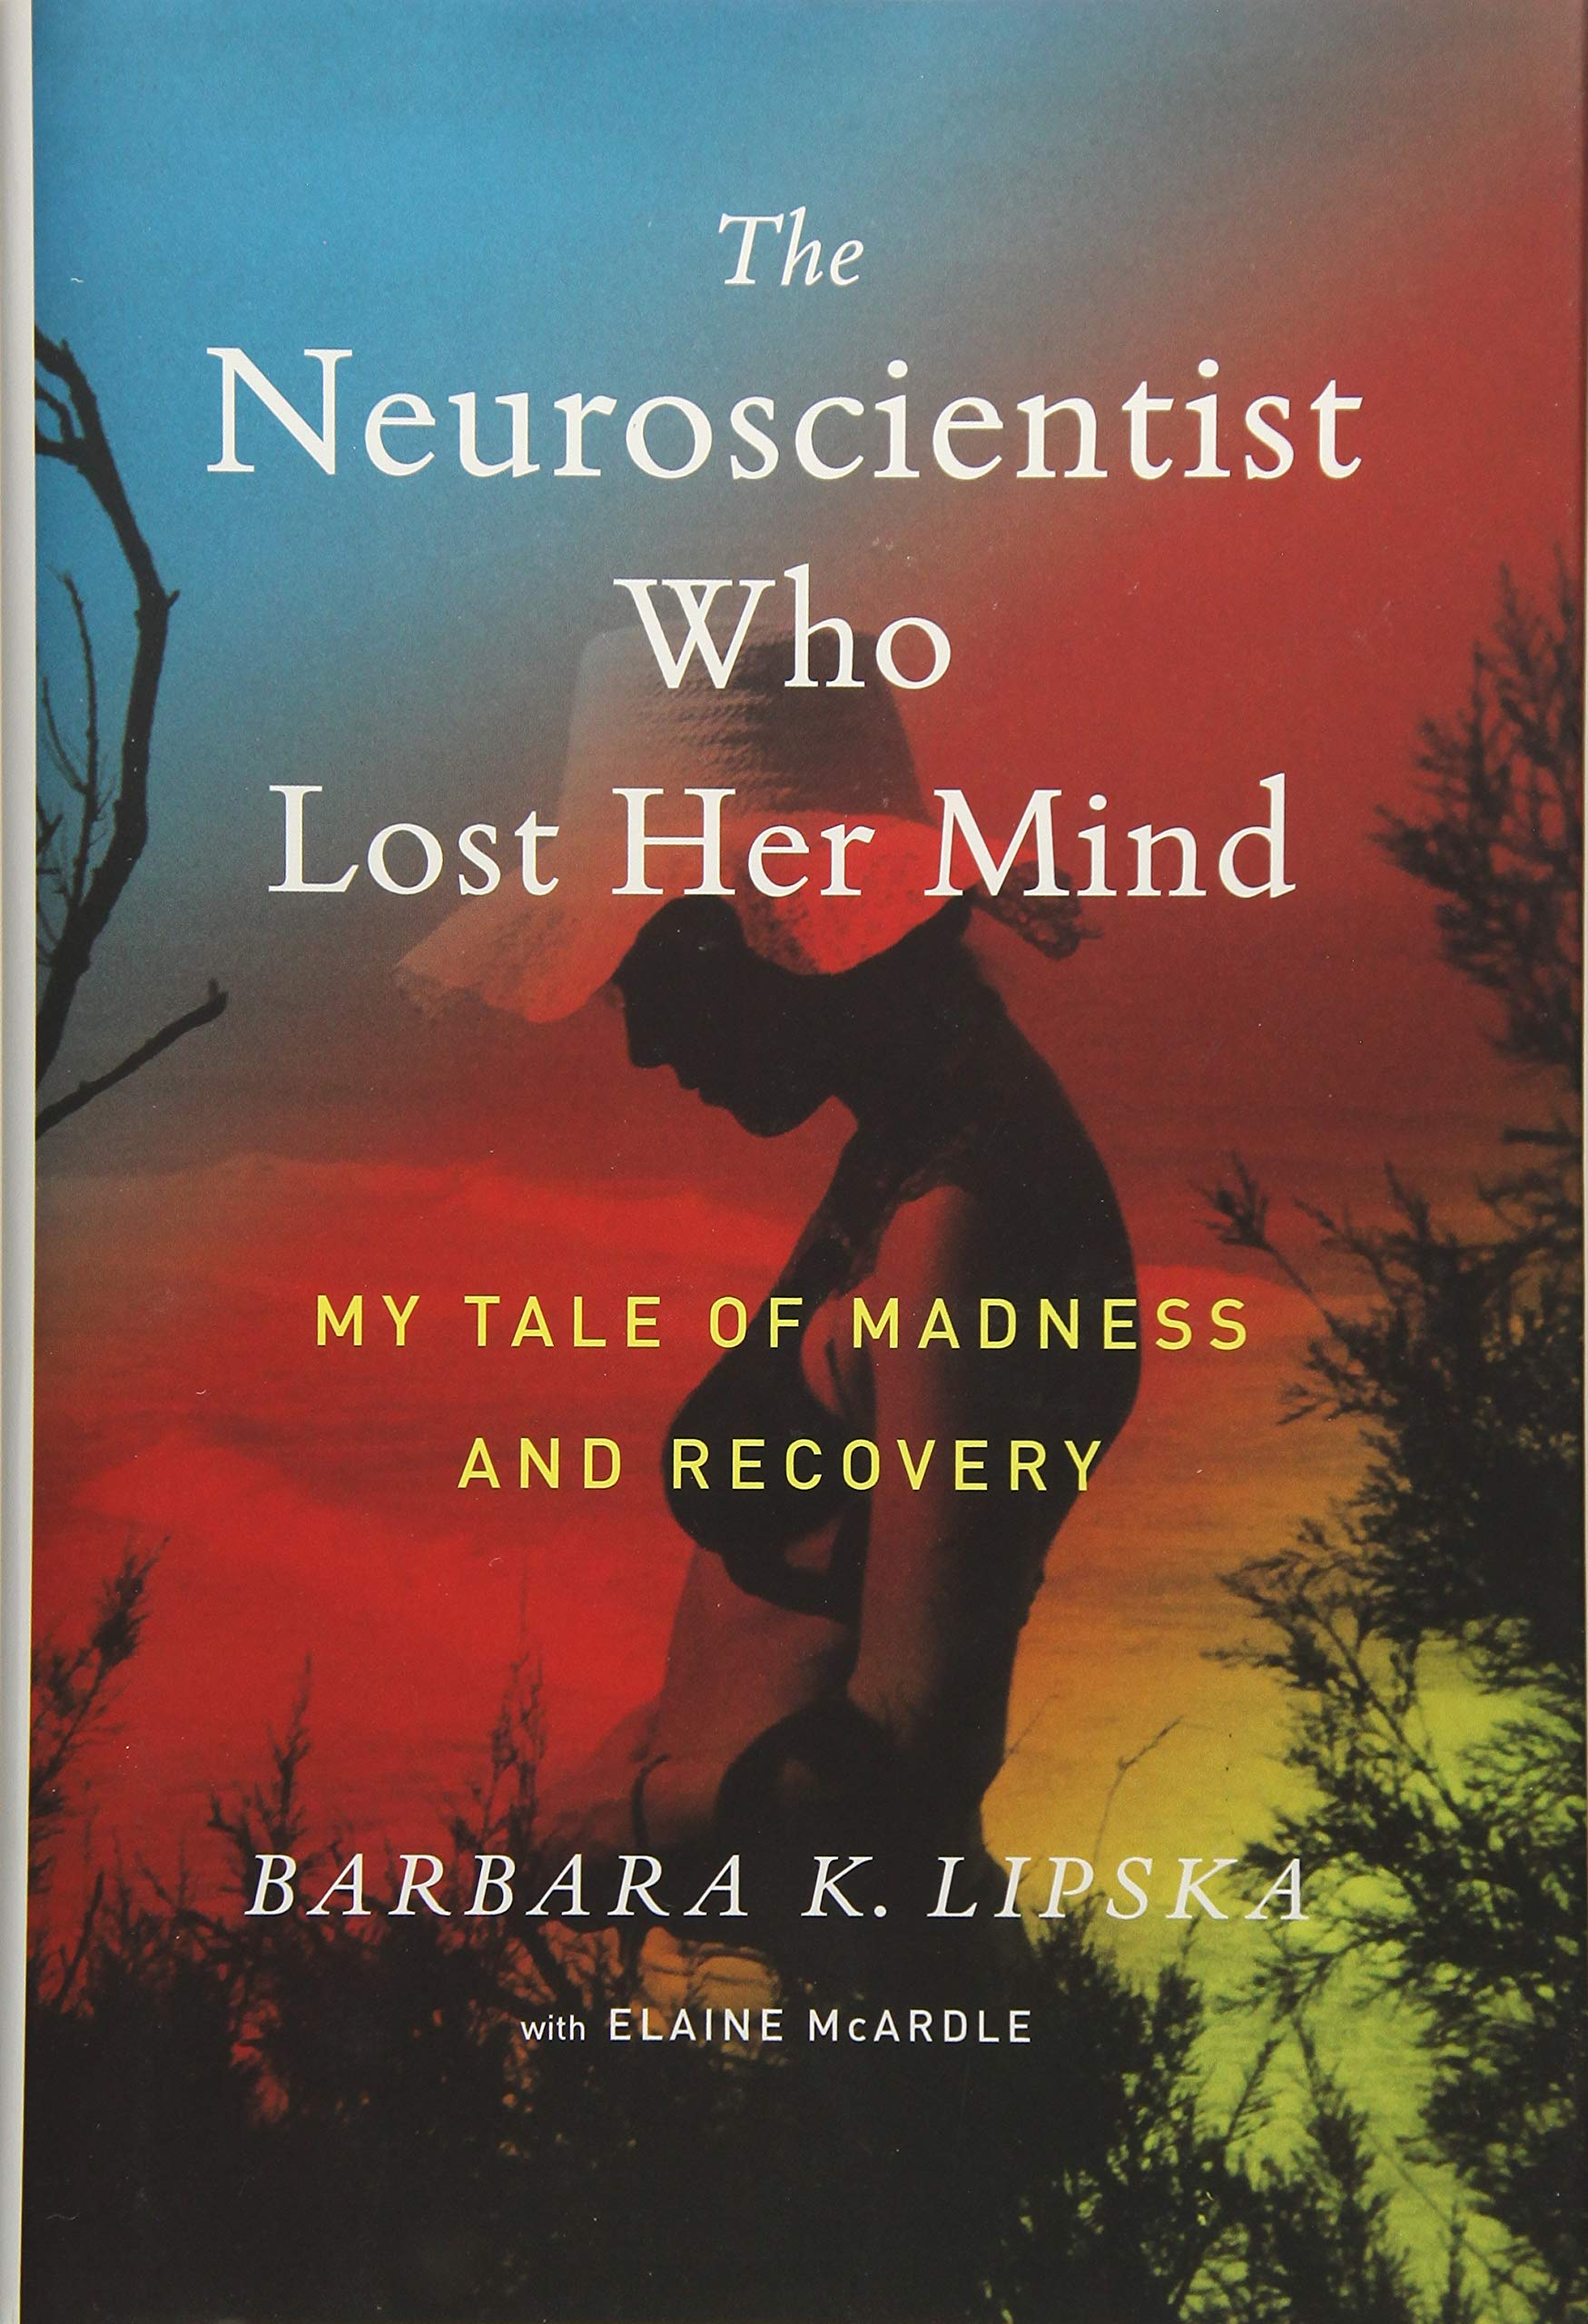 The Neuroscientist Who Lost Her Mind: My Tale of Madness and Recovery:  Barbara K. Lipska Ph.D, Elaine McArdle: 9781328787309: Amazon.com: Books